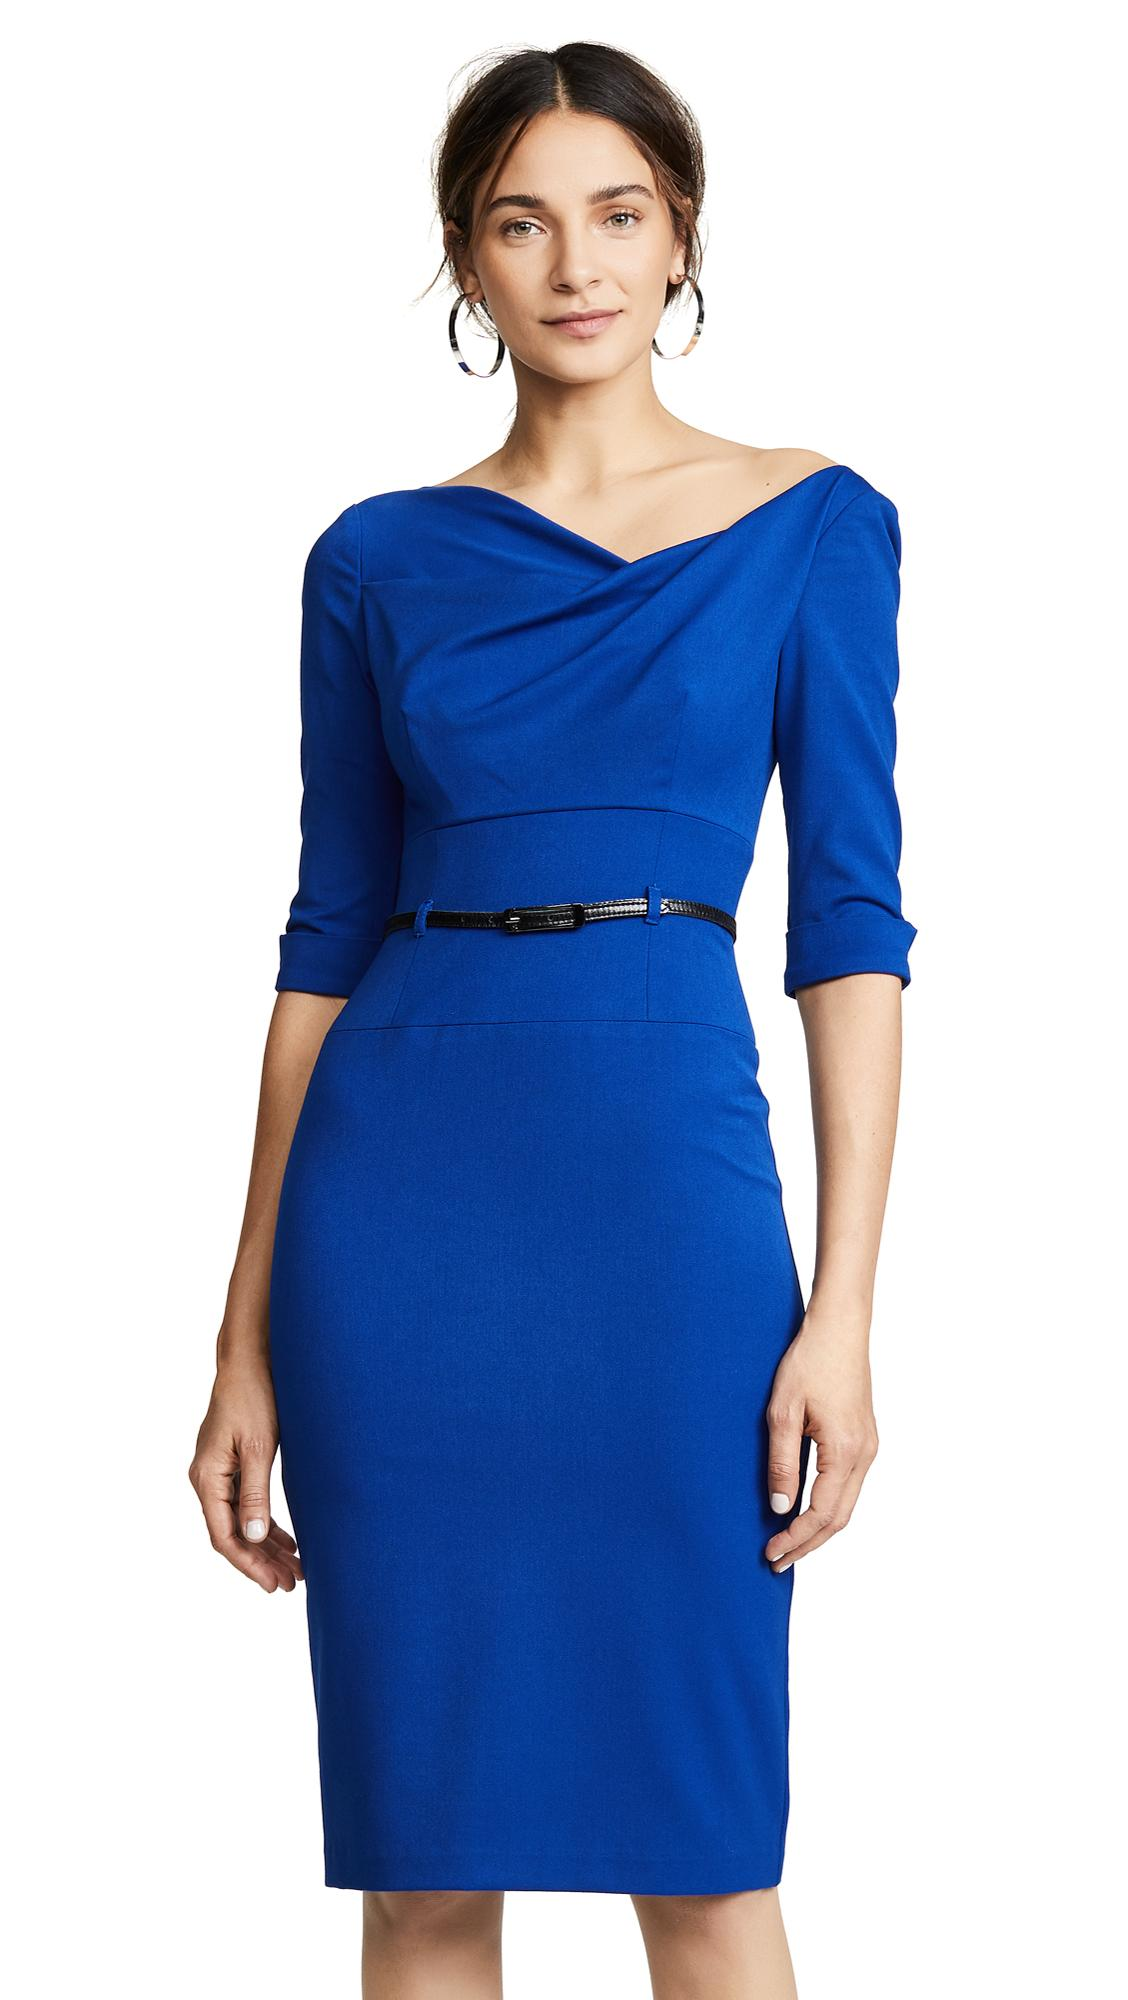 2ced023a977 Black Halo 3 4 Sleeve Jackie O Dress In Cobalt